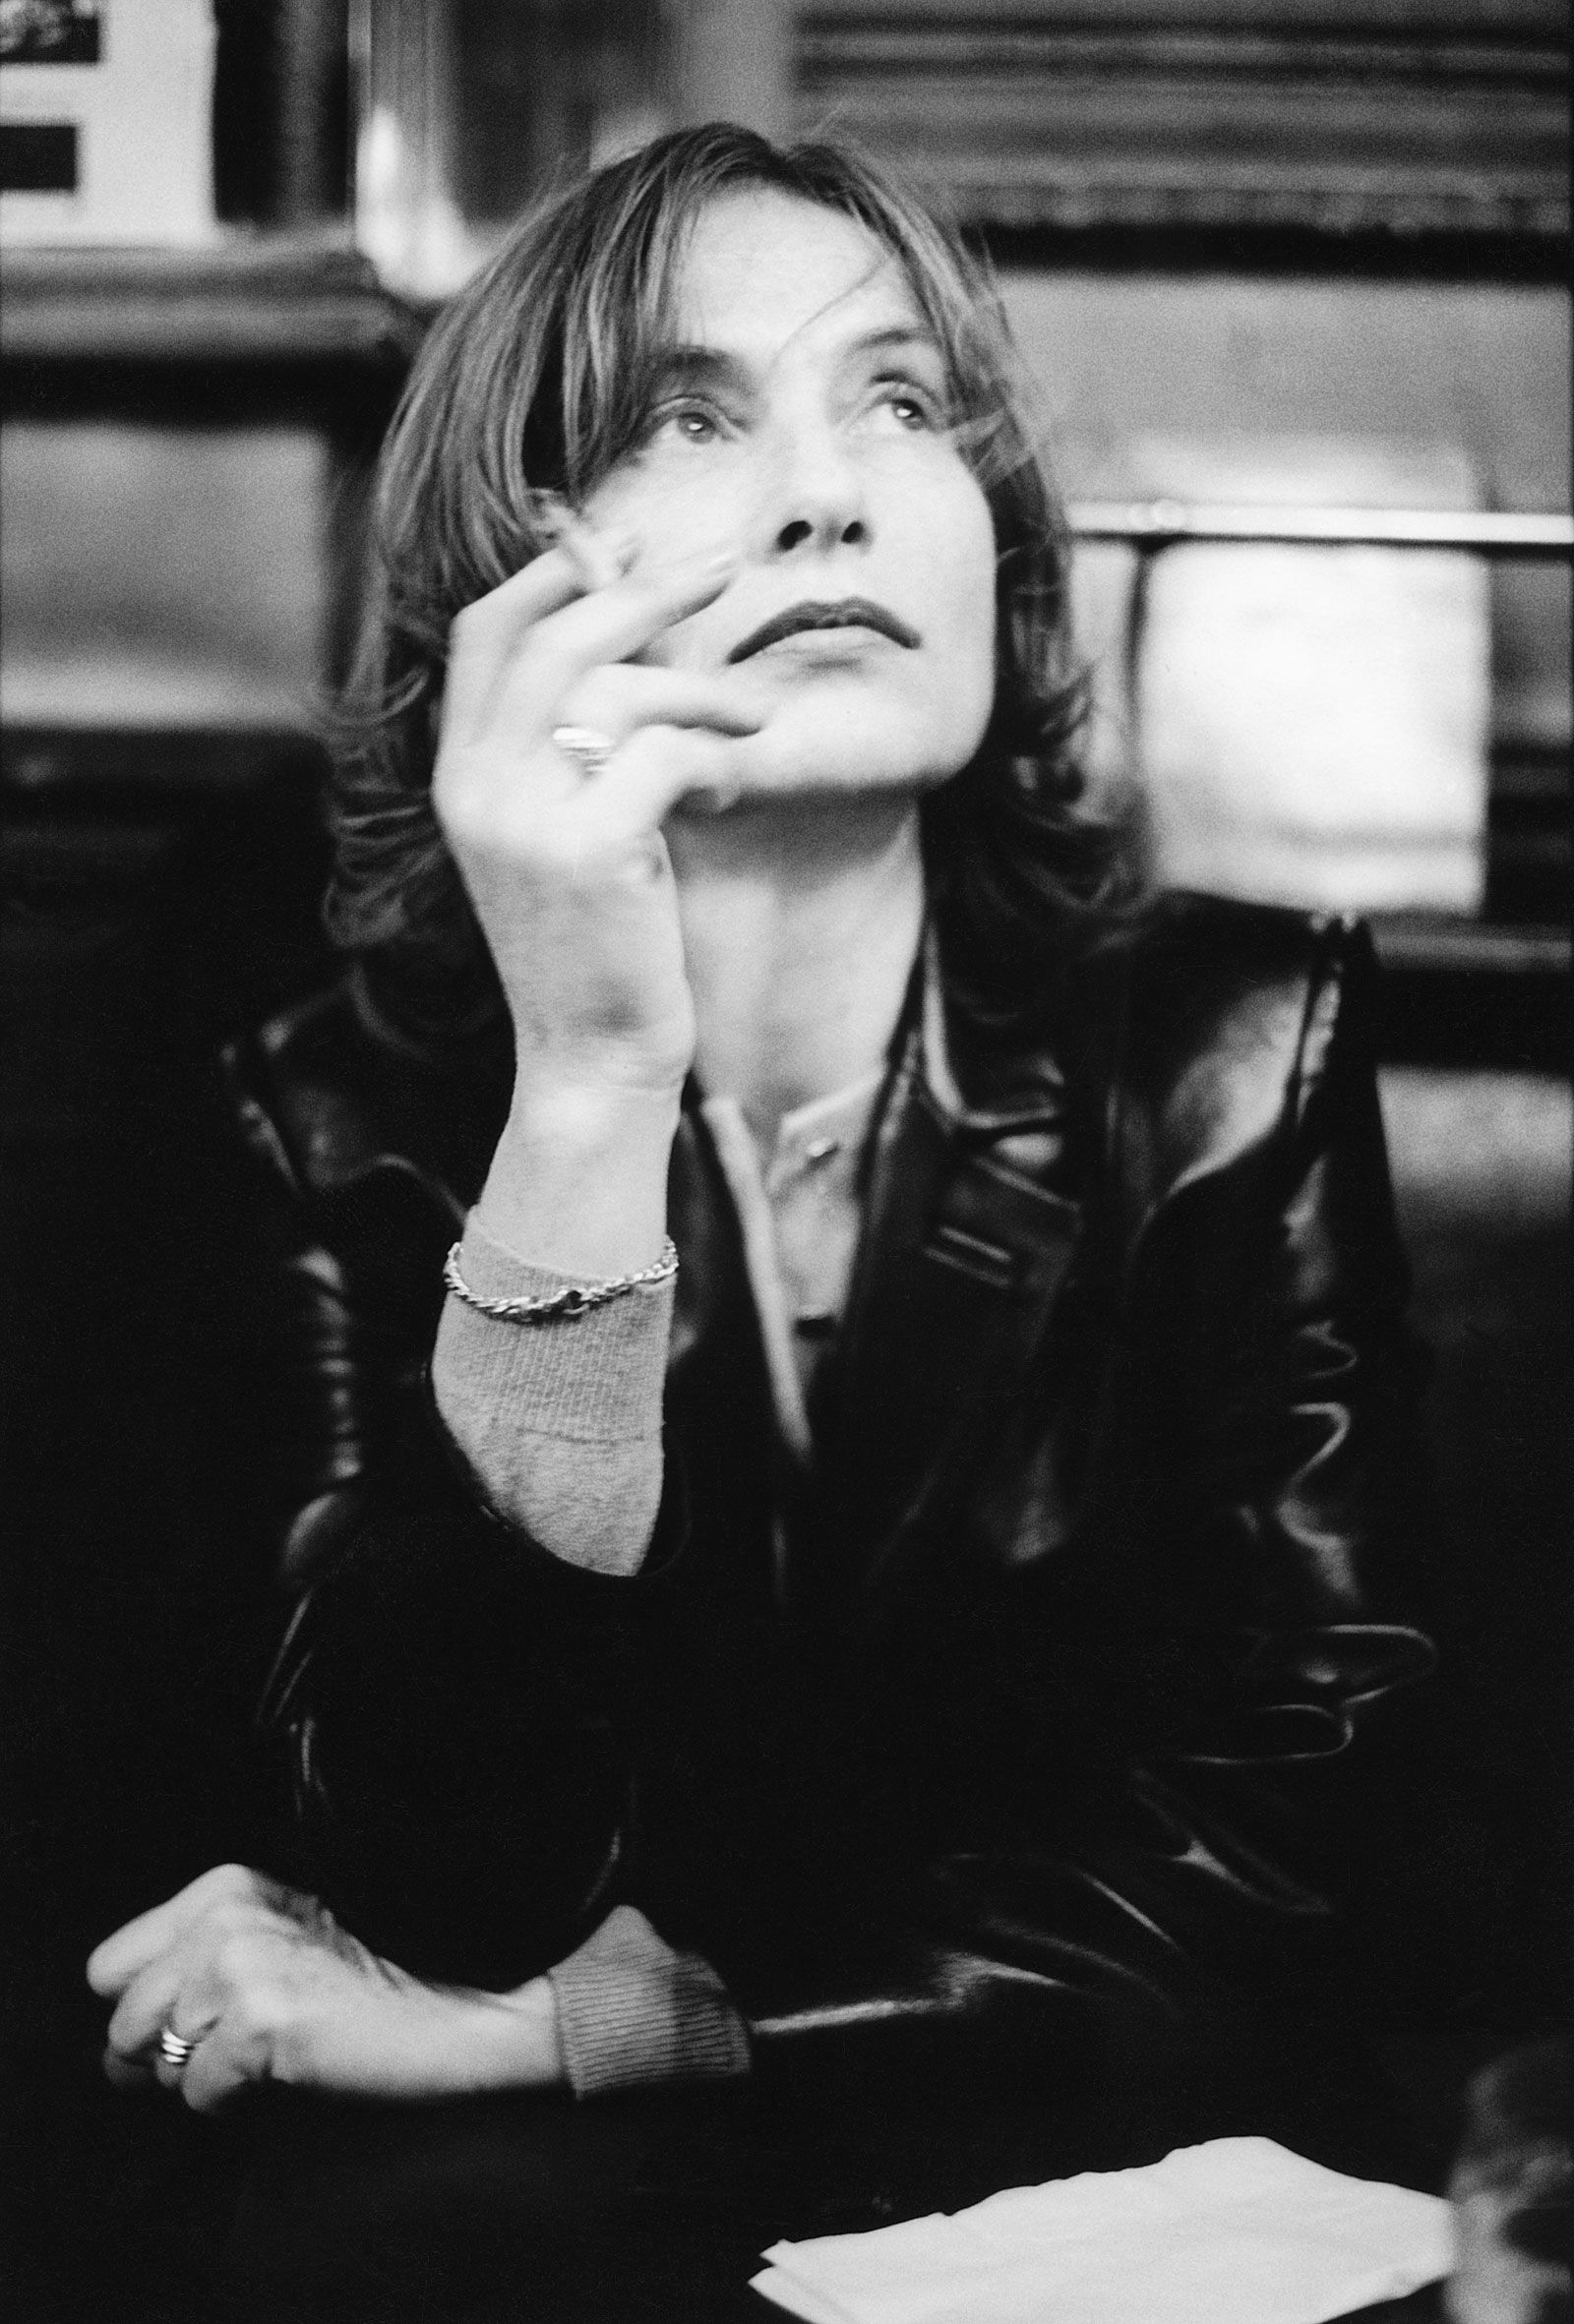 Isabelle Huppert By Carole Bellaiche Photographier Isabelle